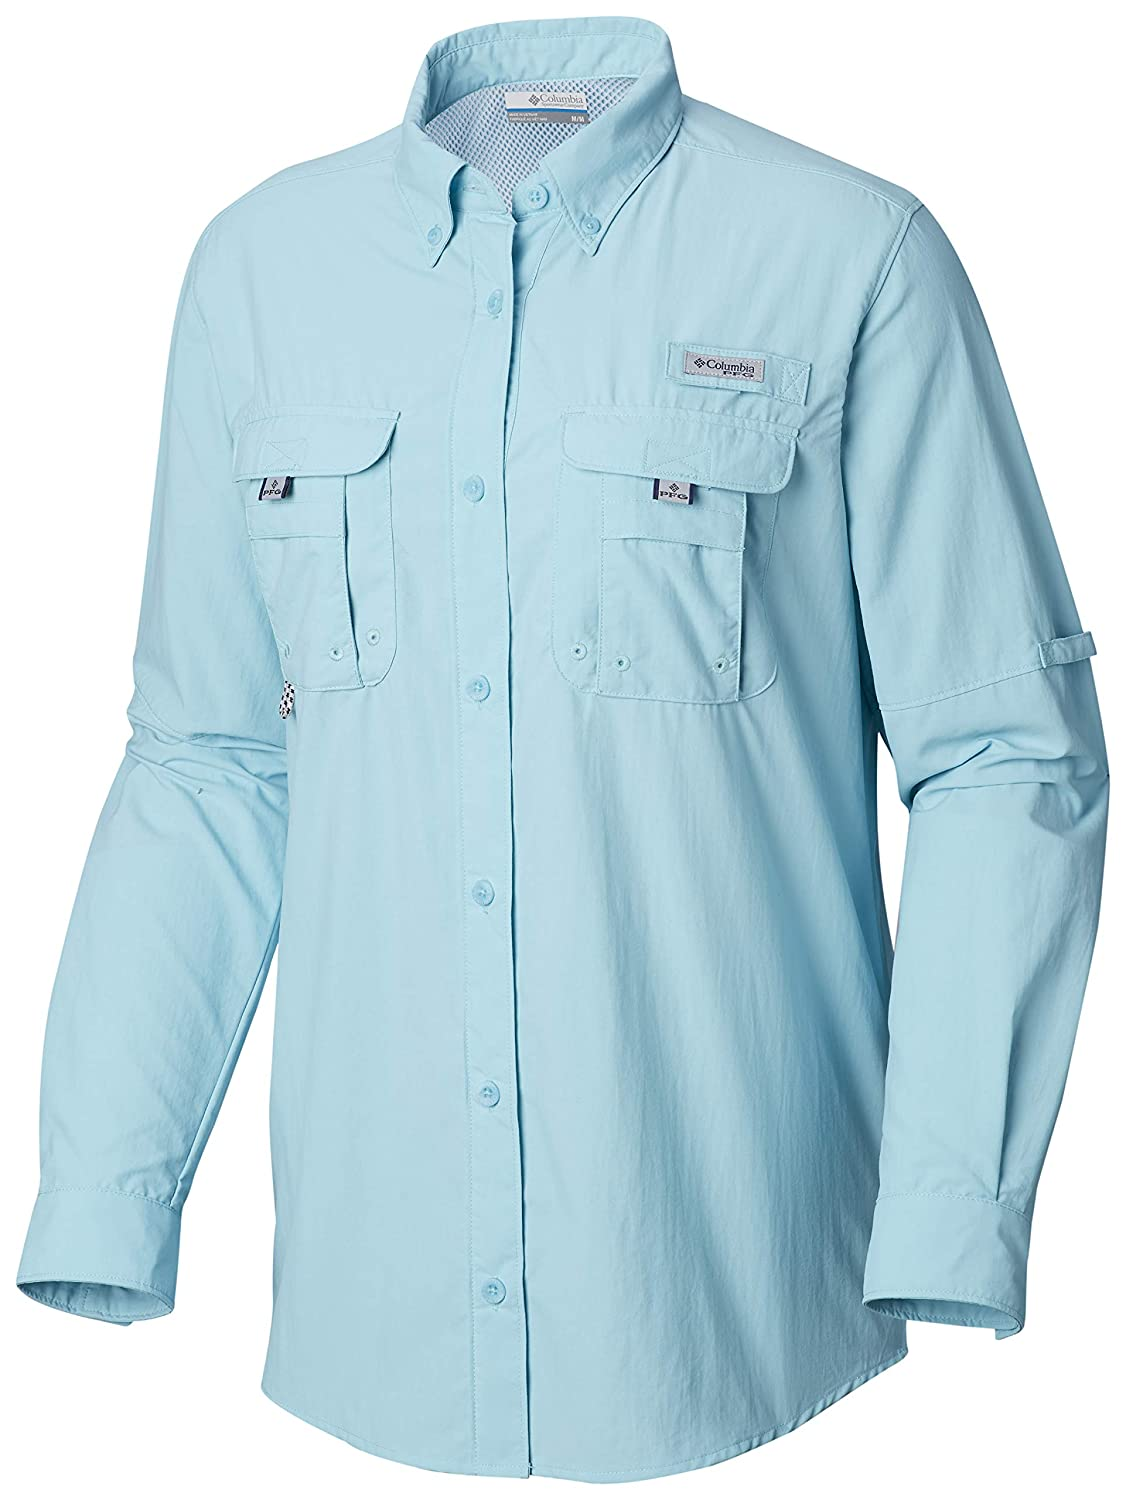 b7497c50694 Amazon.com: Columbia Women's PFG Bahama Ii Long Sleeve Shirt, Breathable  with Uv Protection: Clothing